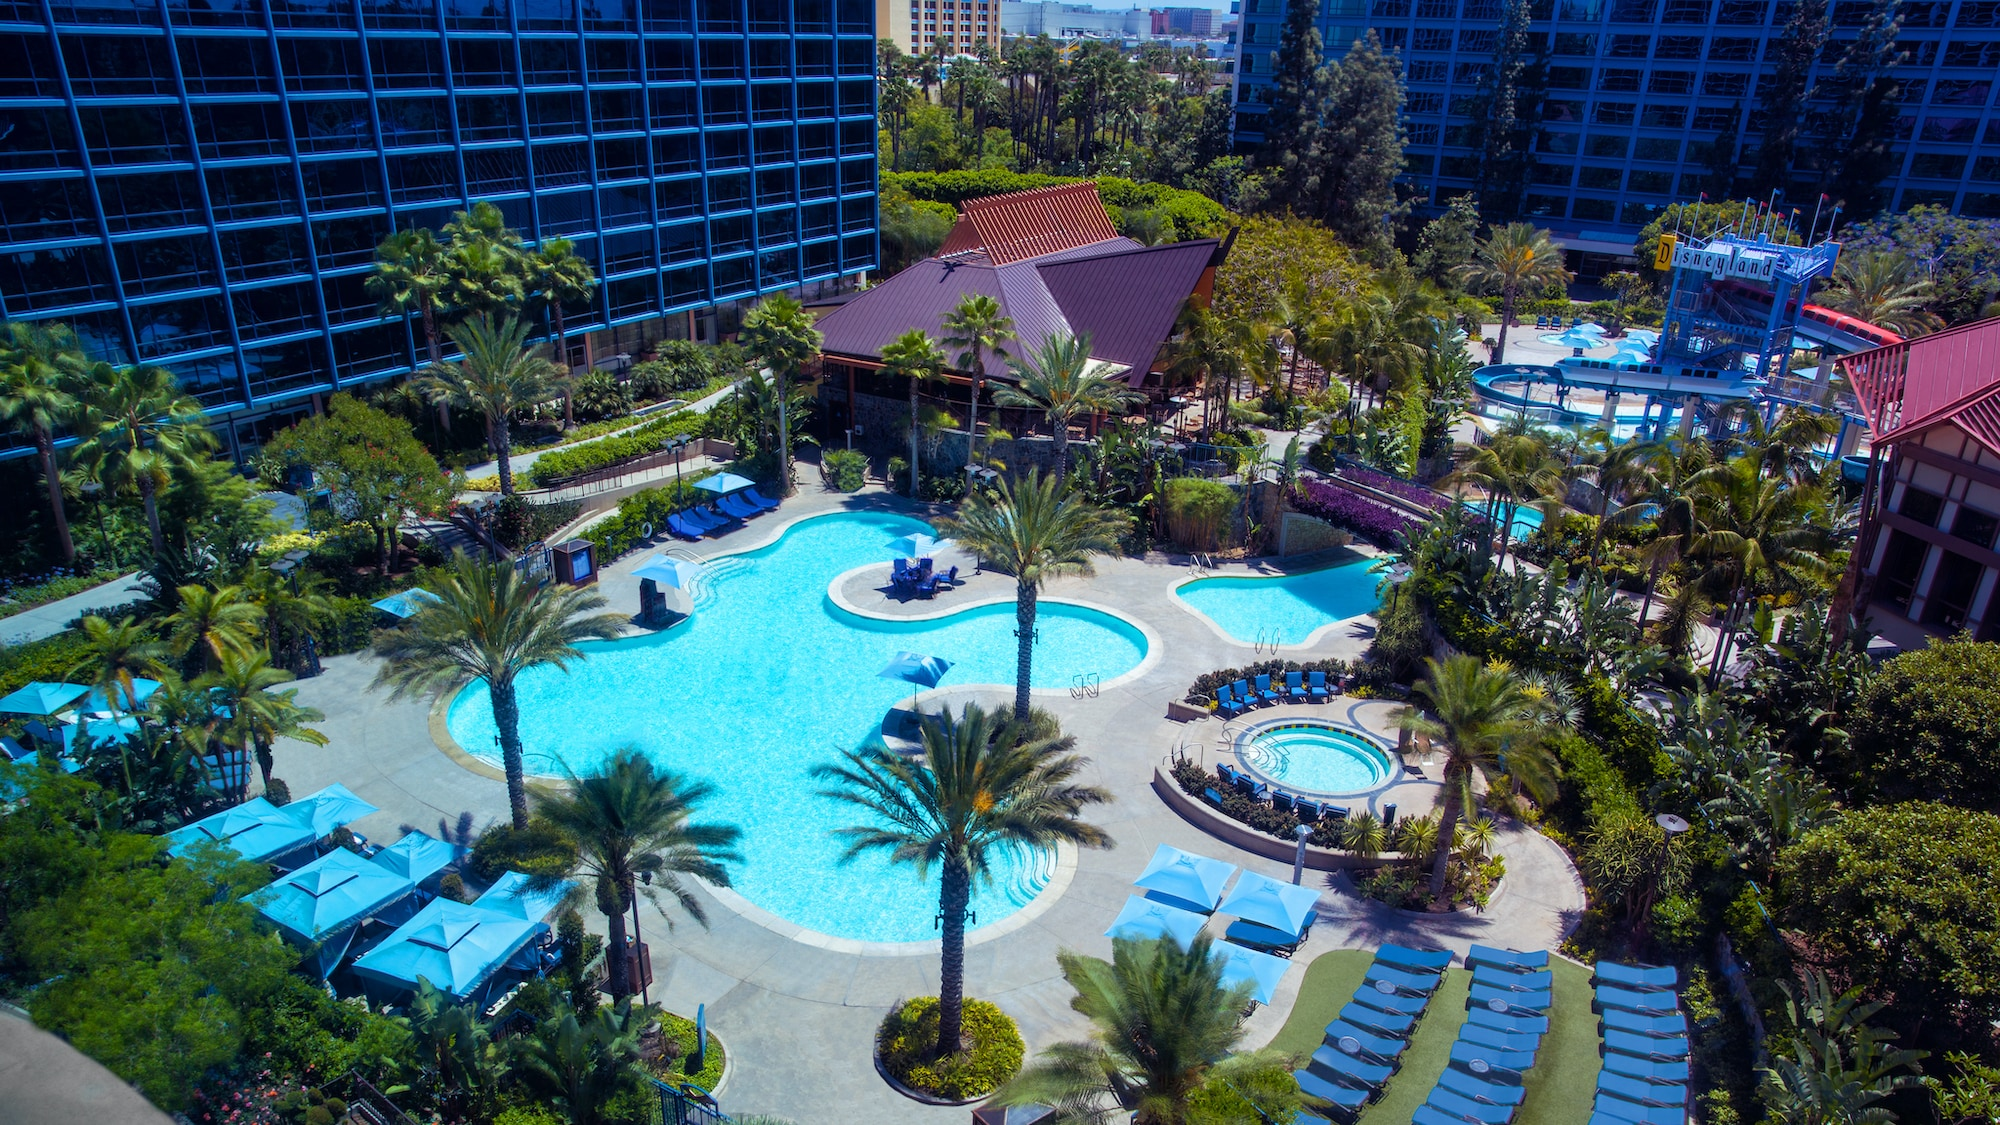 Image of the pool at the Disneyland Hotel.